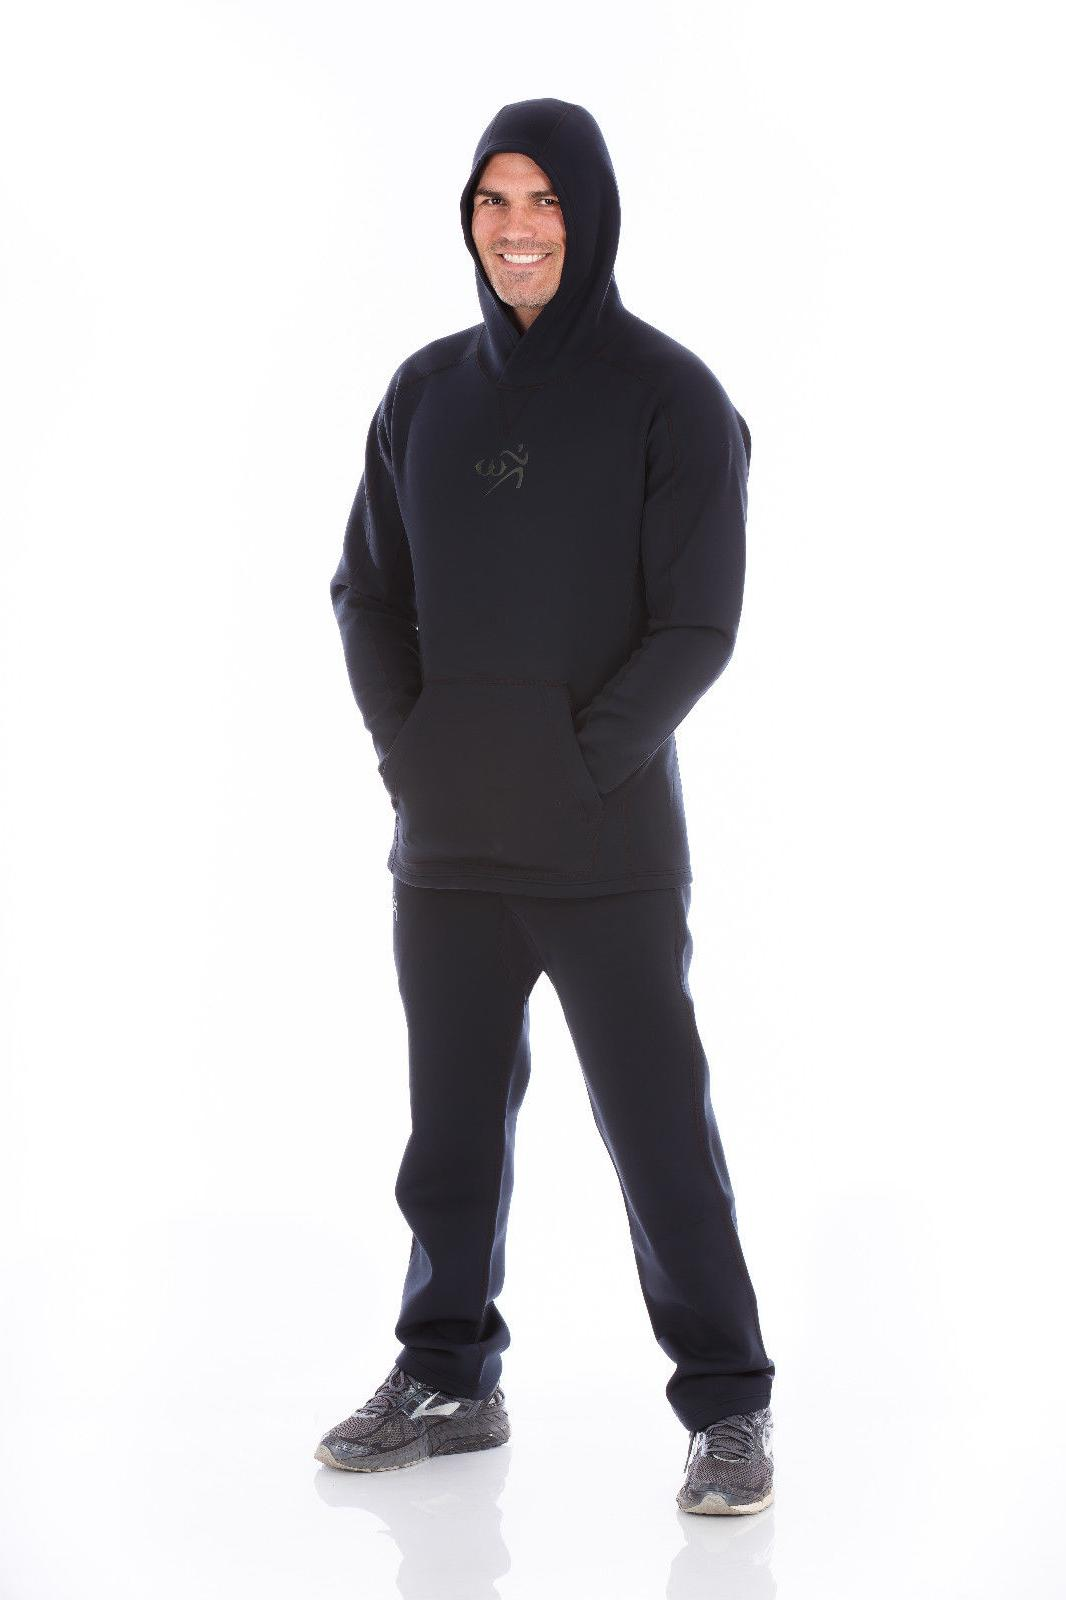 Kutting Neoprene Weight Loss Suit All-Black Workout Hoodie